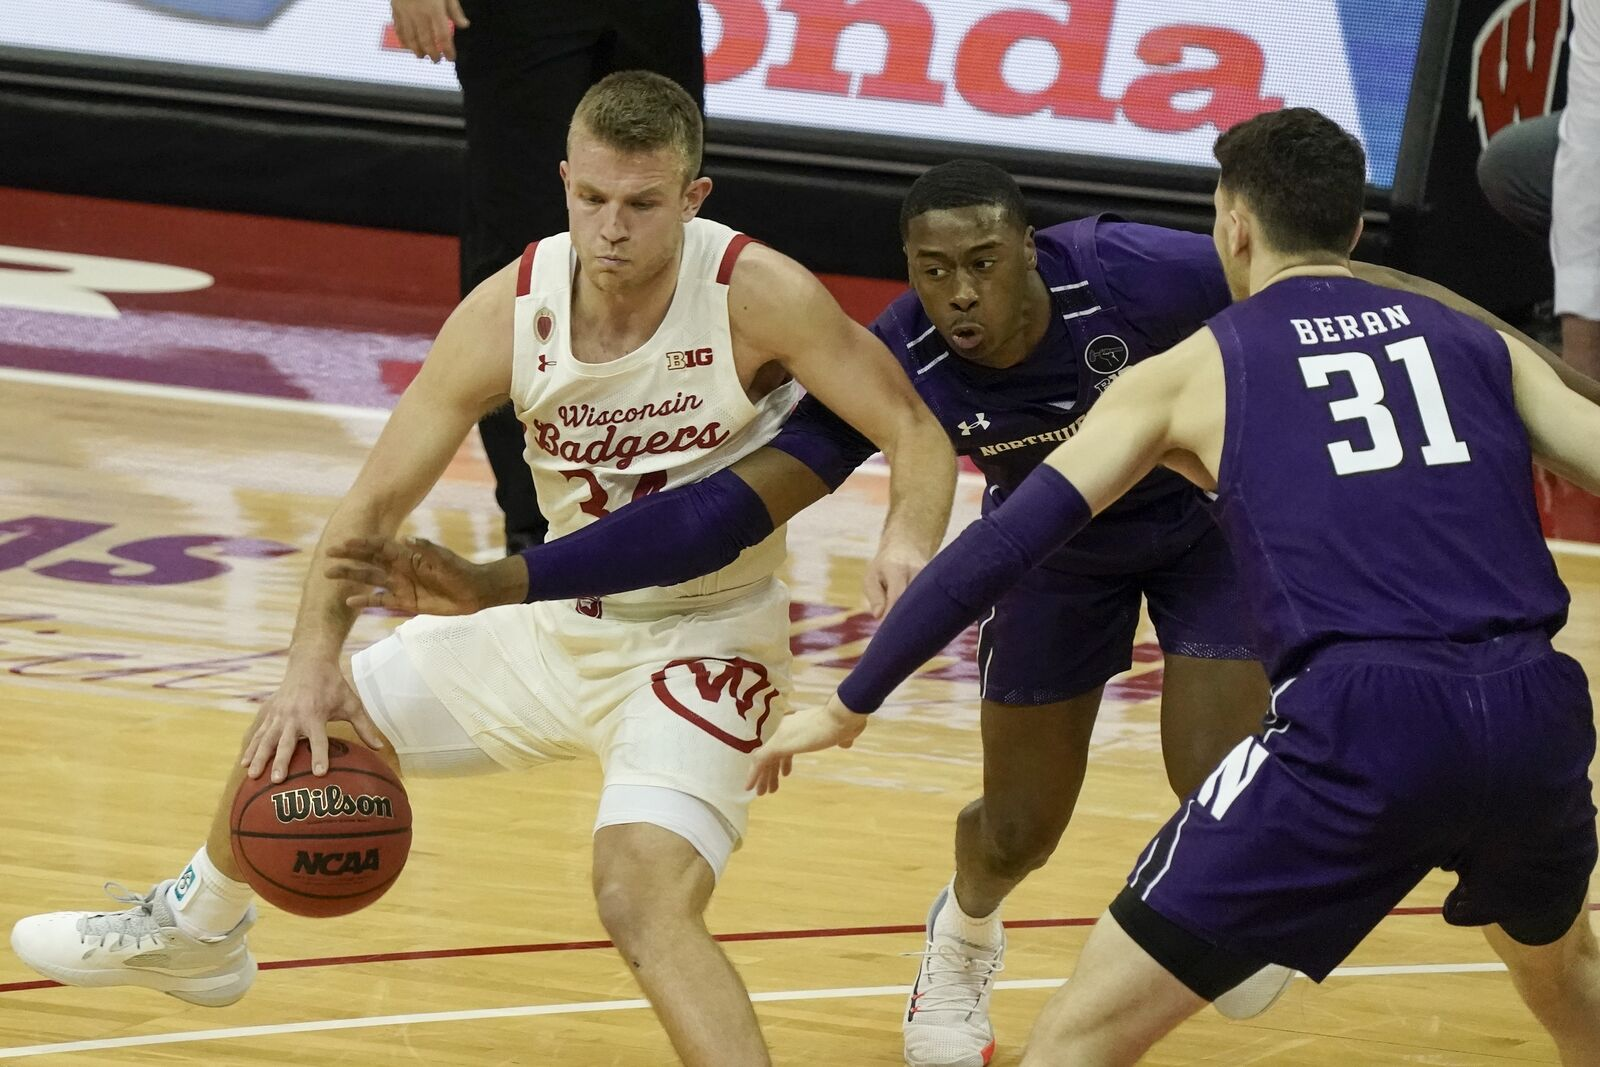 Wisconsin's Brad Davison tries to get past Northwestern's Chase Audige and Robbie Beran (31) during the second half of an NCAA college basketball game Wednesday, Jan. 20, 2021, in Madison, Wis. (AP Photo/Morry Gash)